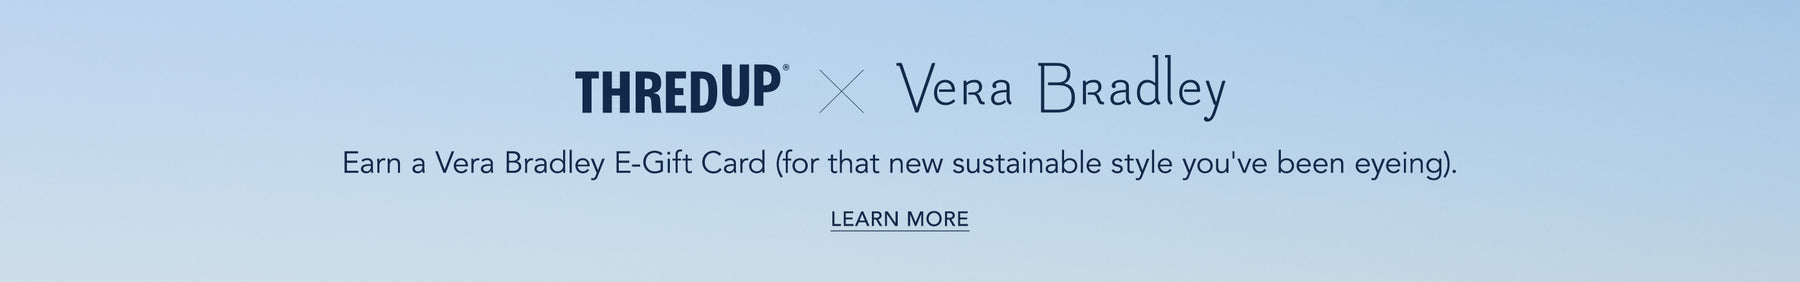 thredUP with Us, Earn a Vera Bradley E-Gift Card (for that new sustainable style you've been eyeing). Learn More